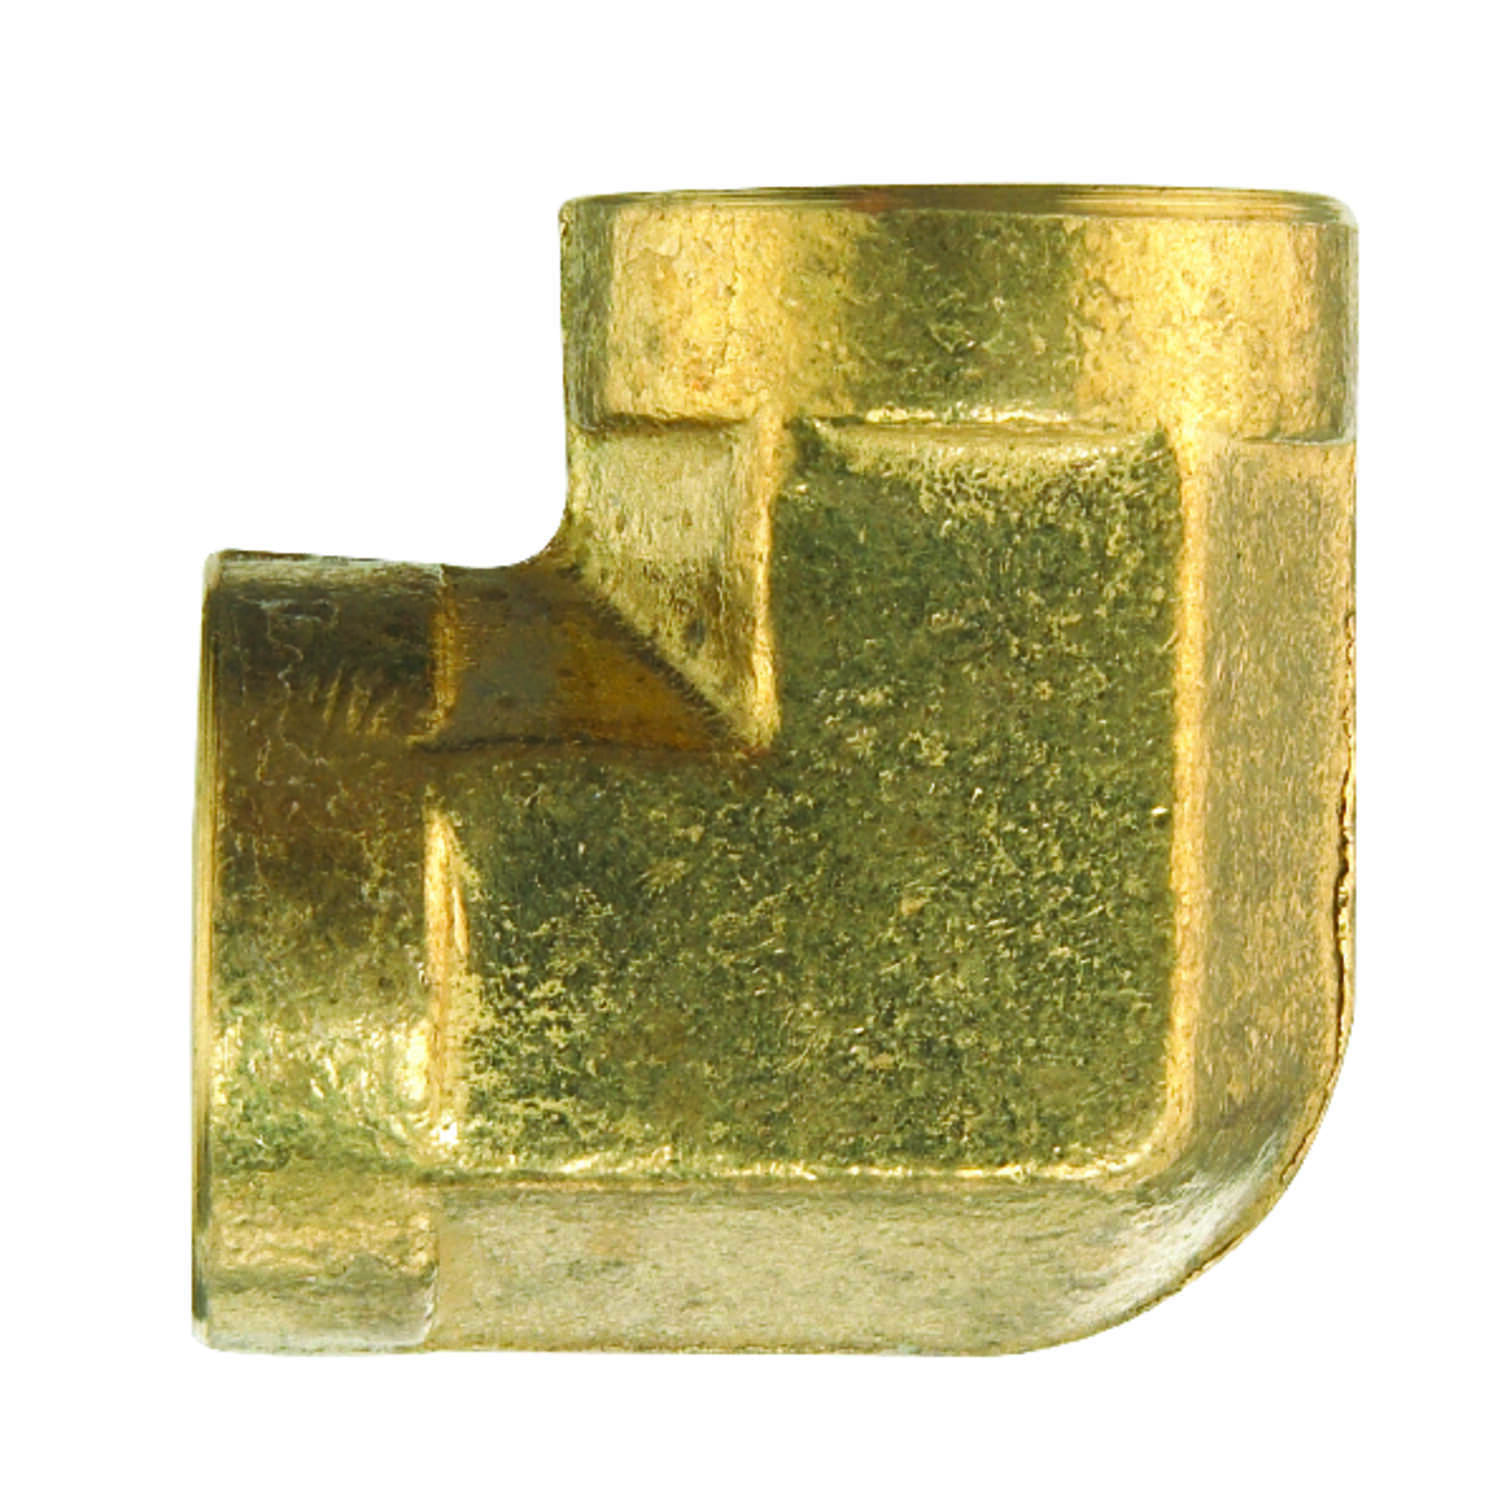 JMF  1/2 in. Dia. x 1/2 in. Dia. FPT To FPT  90 deg. Yellow Brass  Elbow